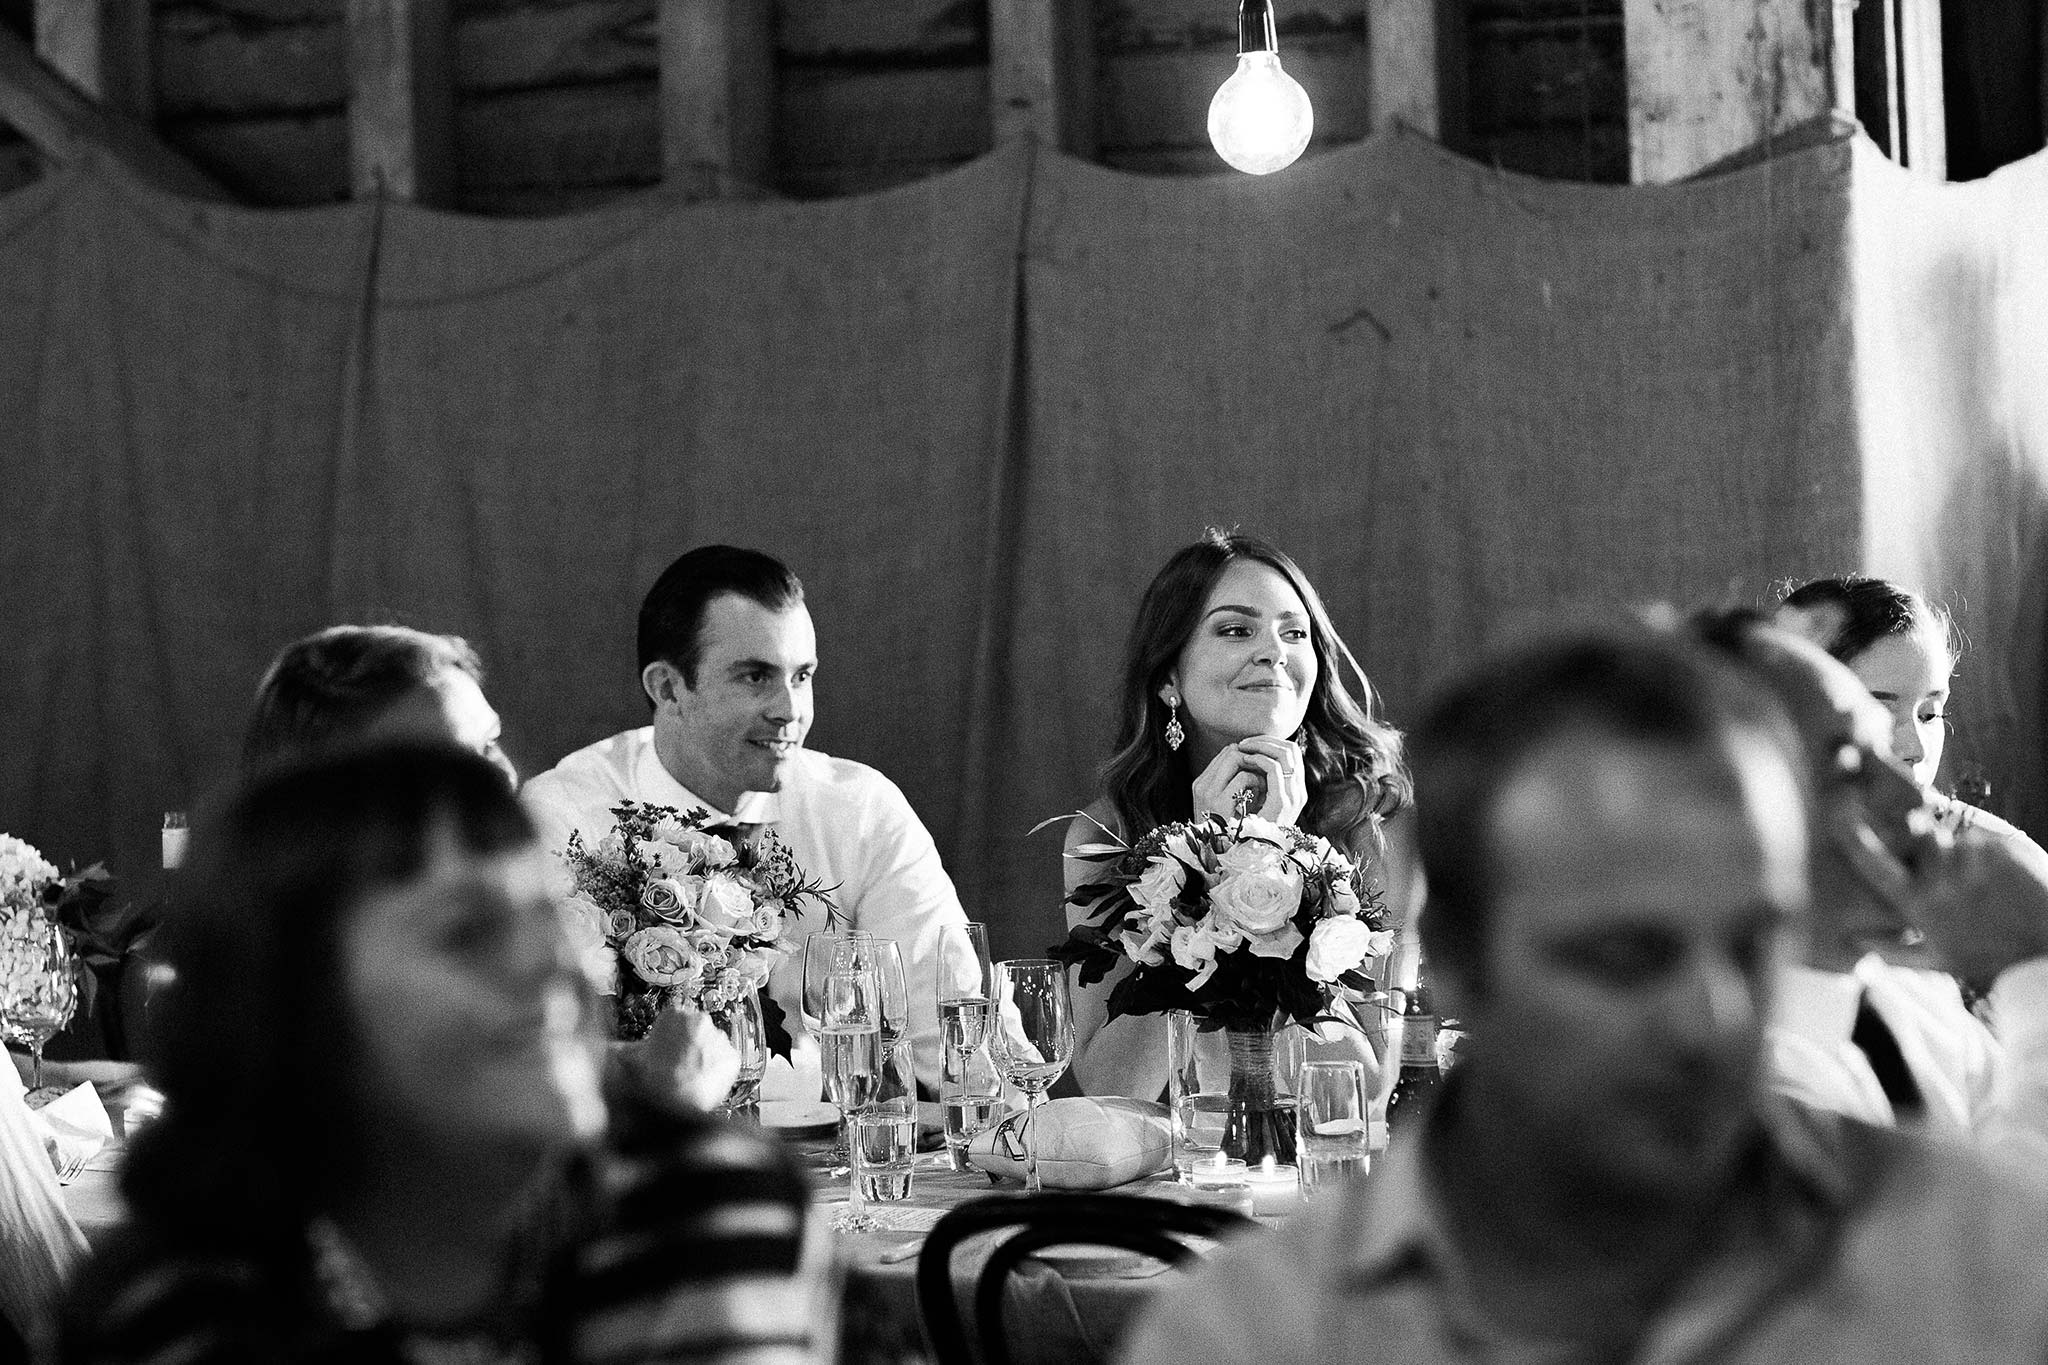 Launceston-Brickendon-barn-Wedding-Photographer-reception-bride-groom